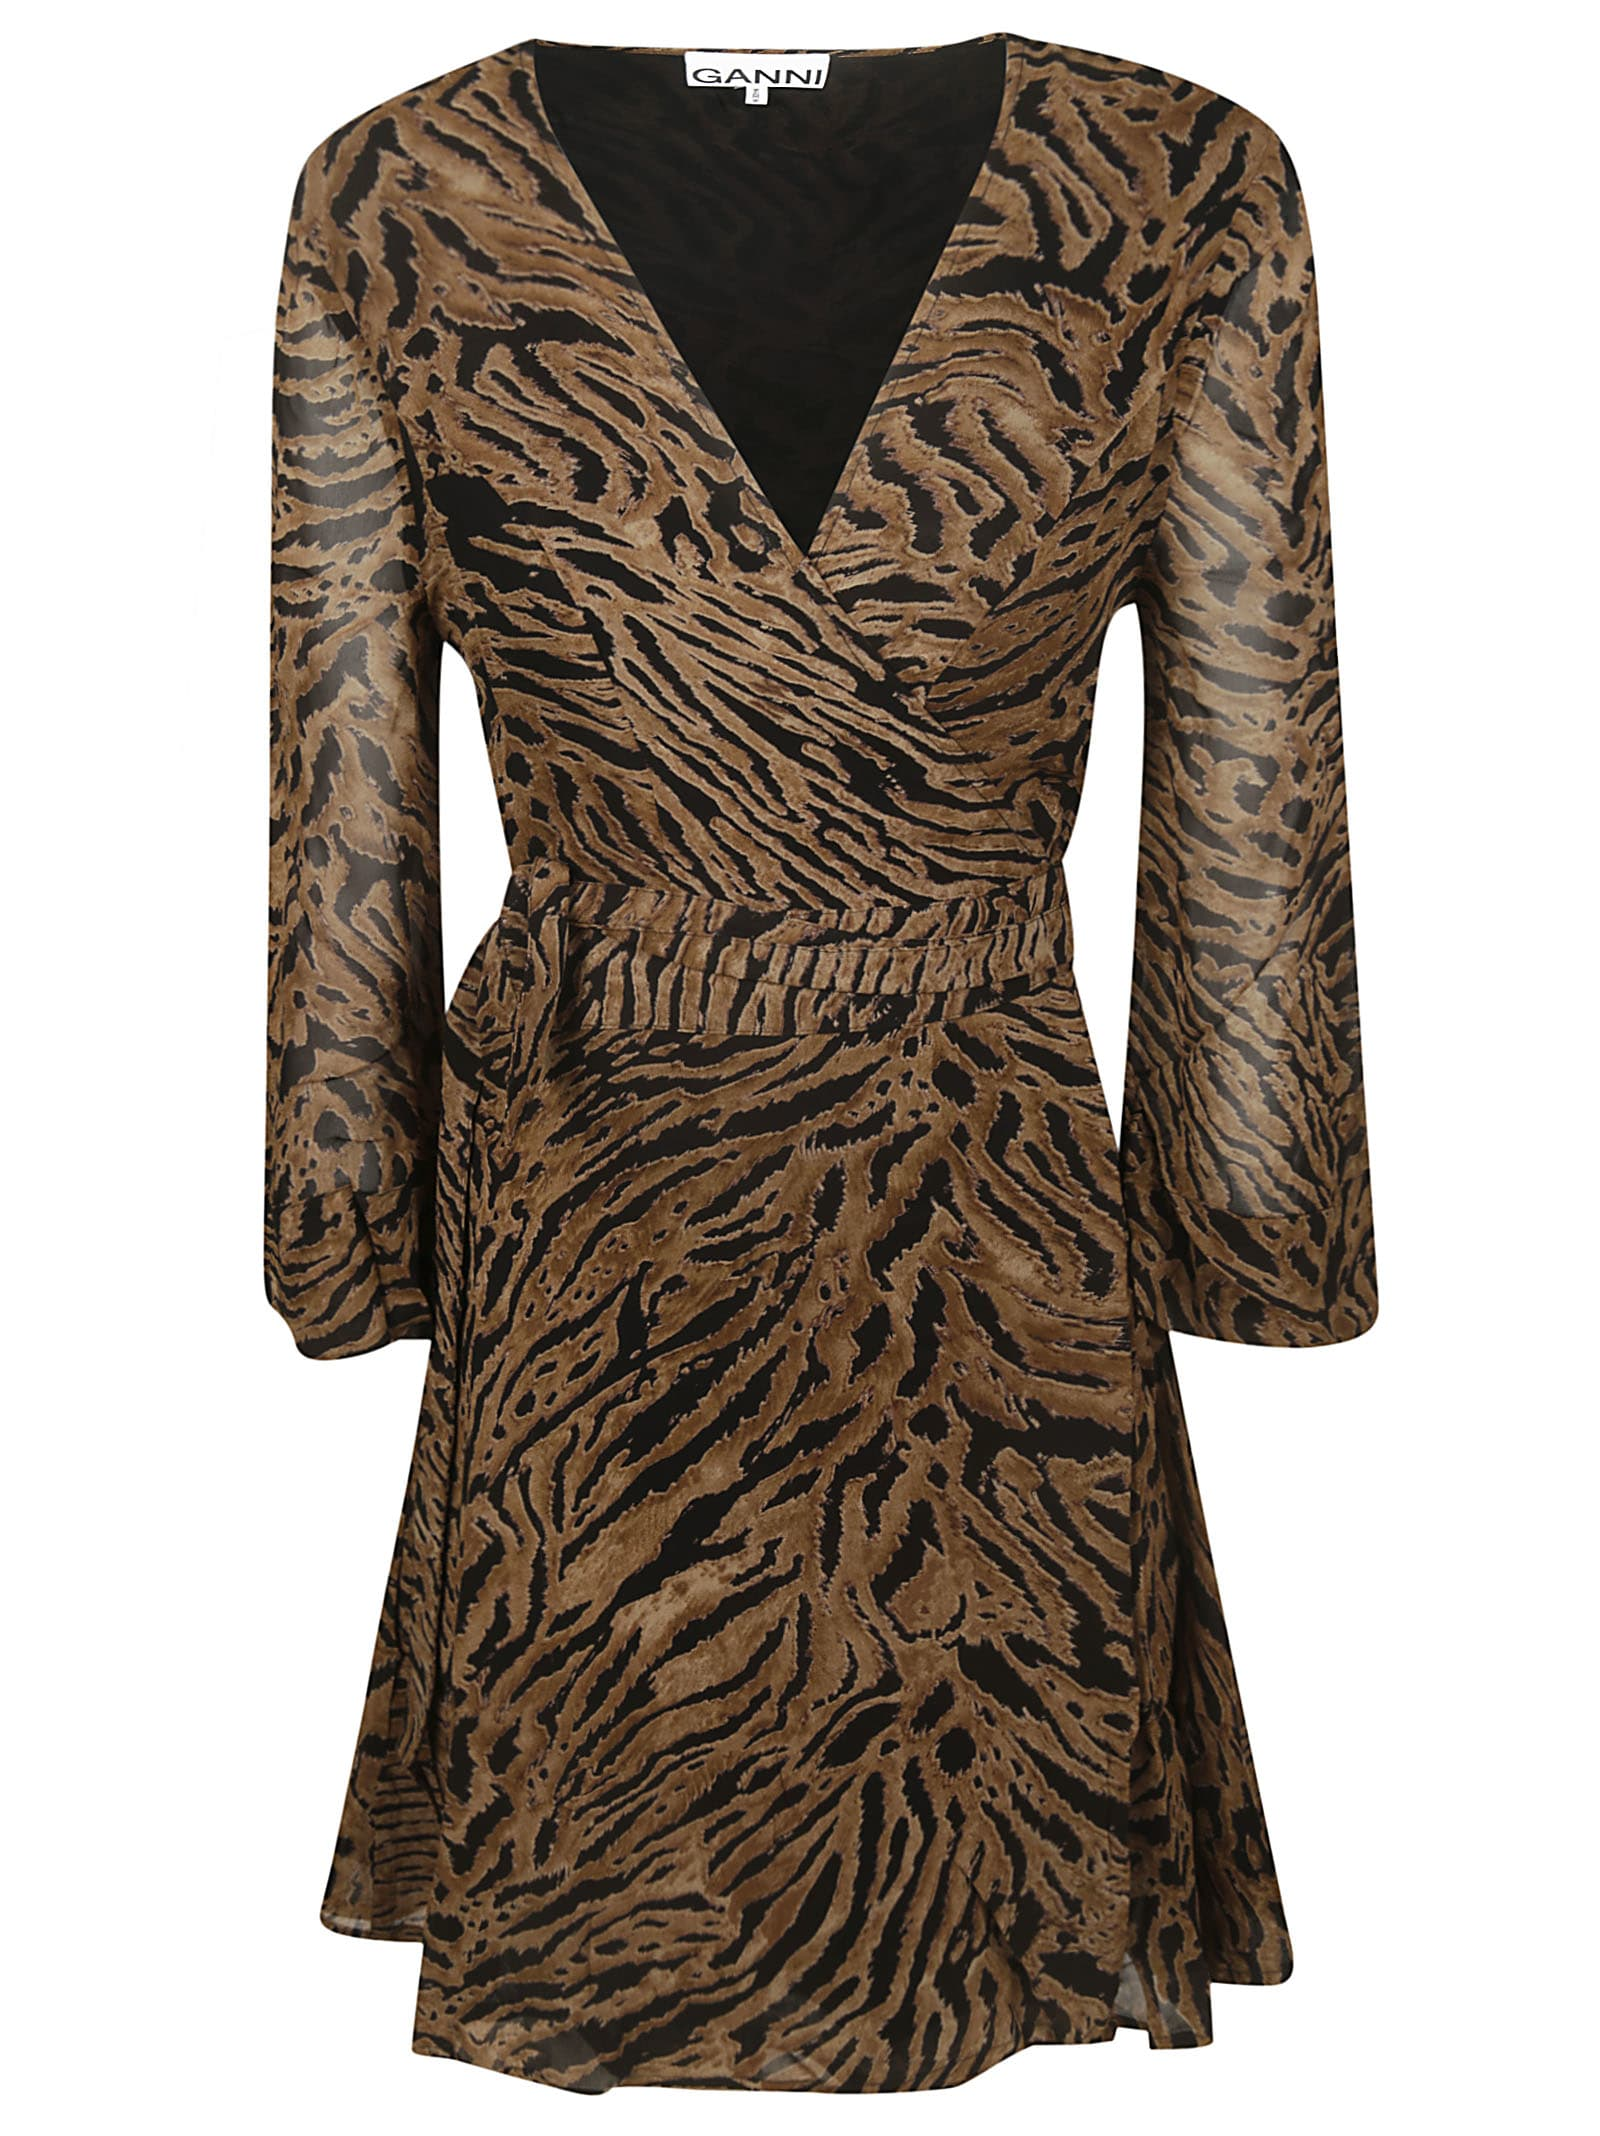 Ganni Animal Print Dress